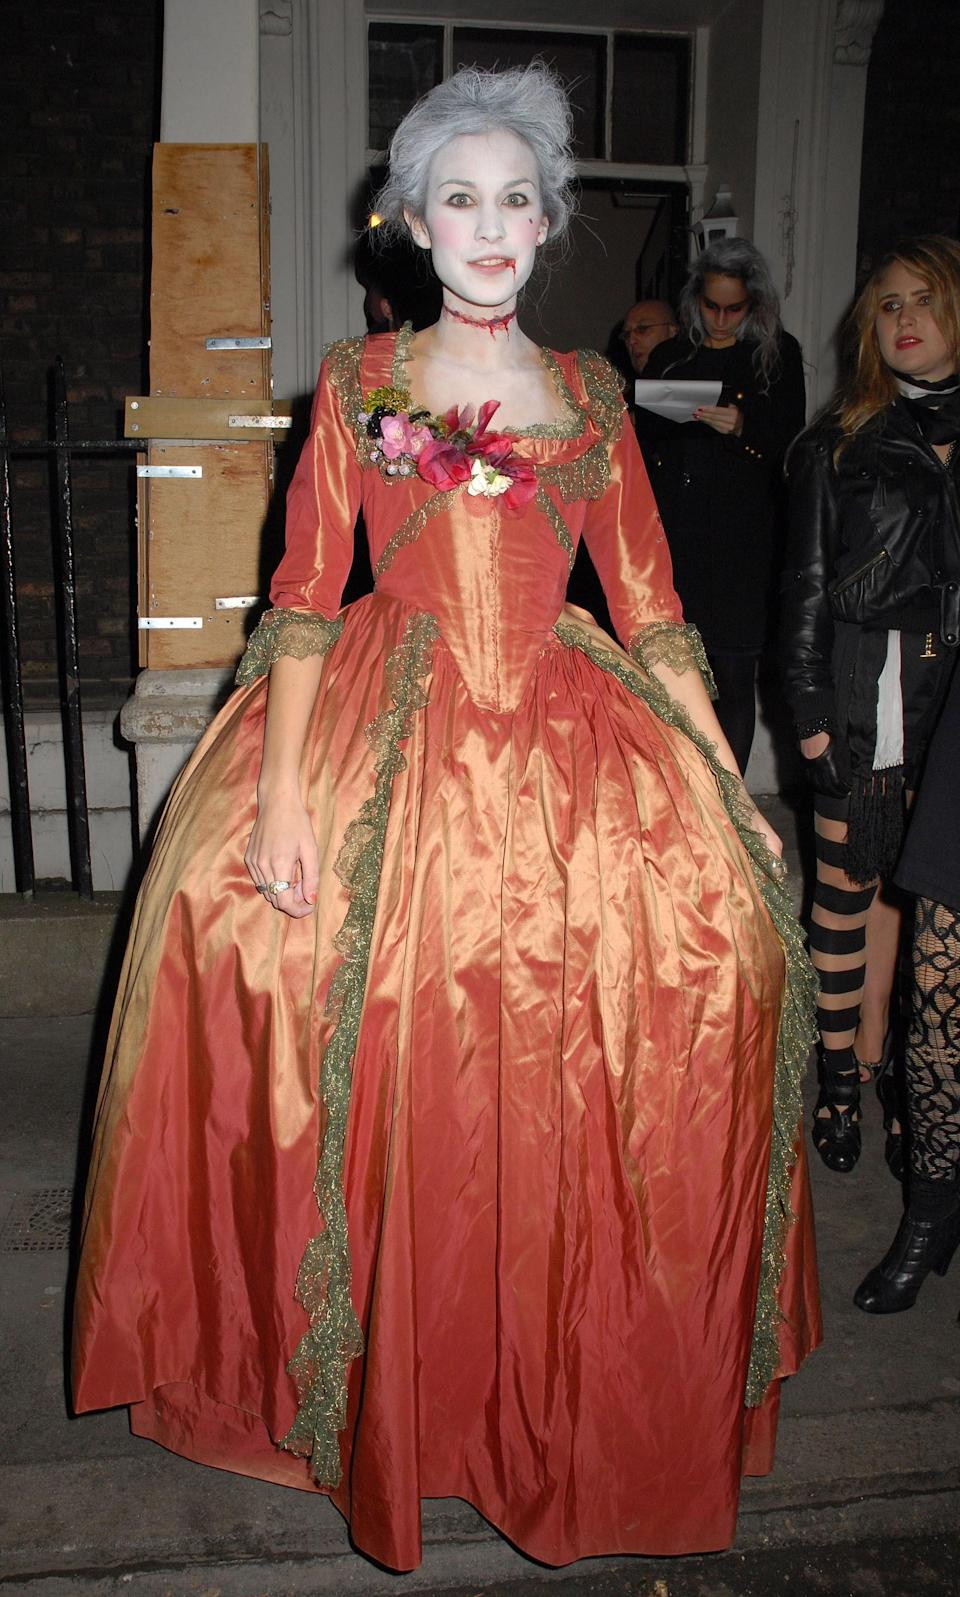 We're just wondering if she stood up the whole night in that hoop skirt.